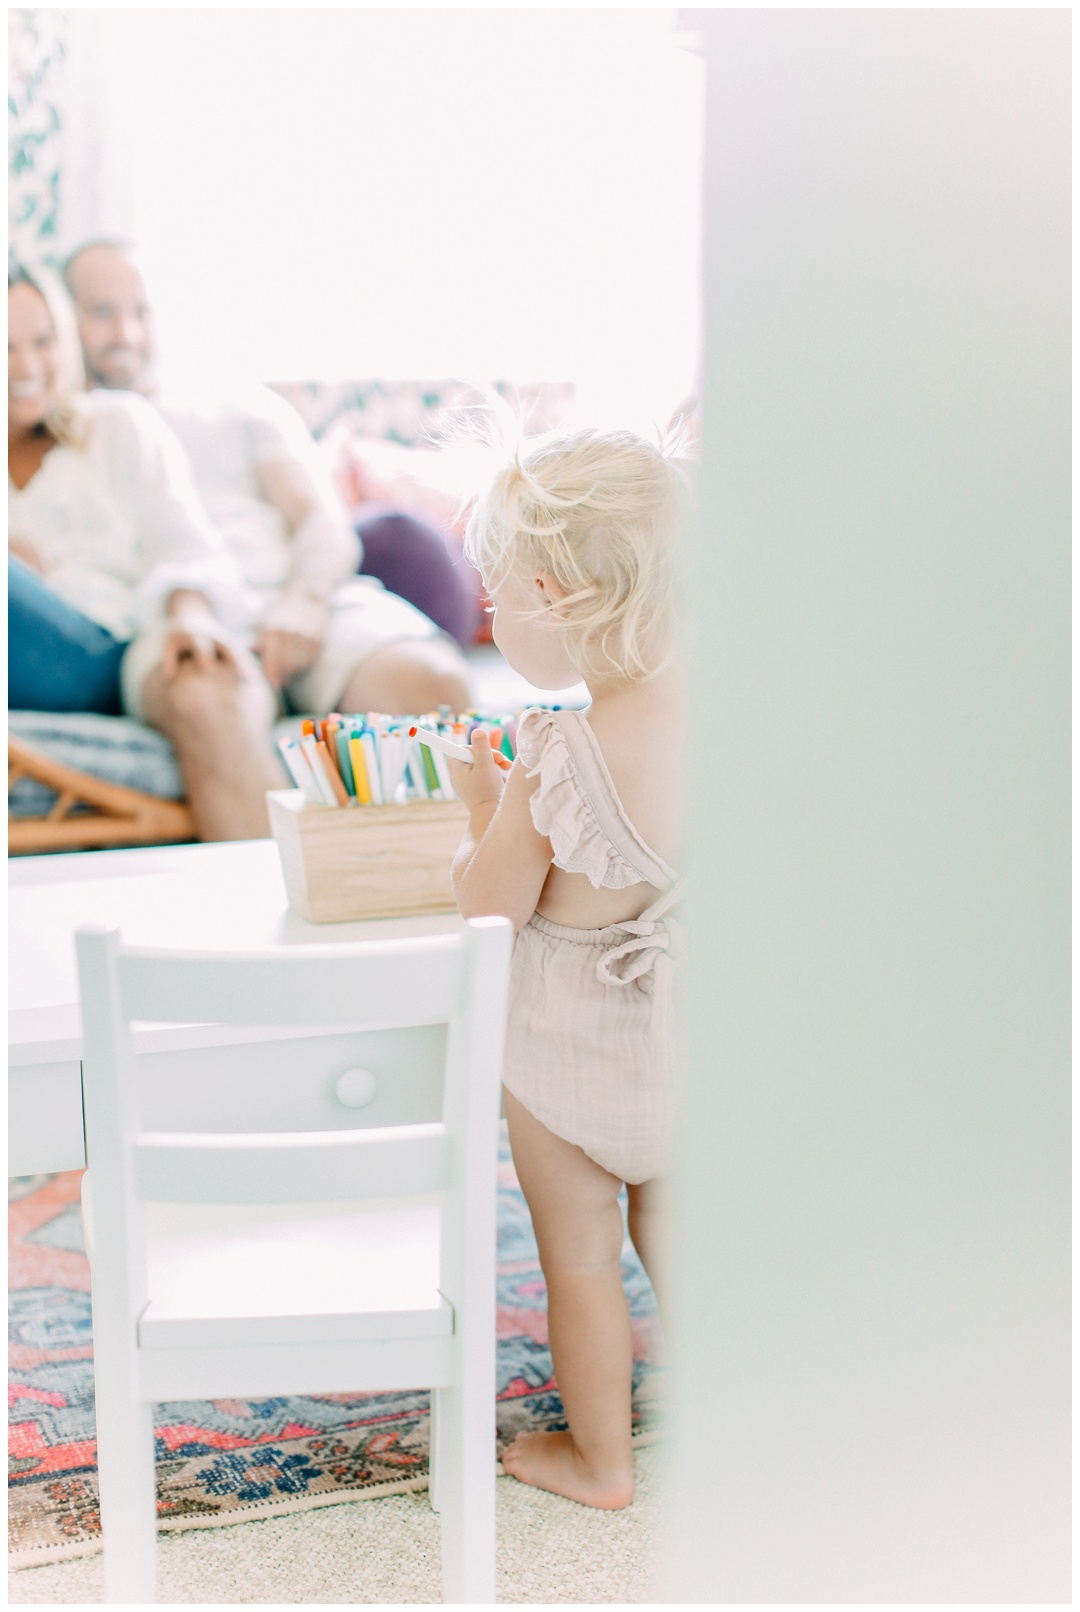 Newport_Beach_Lifestyle_in-Home_Photographer_Newport_Beach_In-Home_Photography_Orange_County_Photographer_Cori_Kleckner_Photography_Orange_County_in-home_Photography_Kristin_Dinsmore_Family_session_1941.jpg